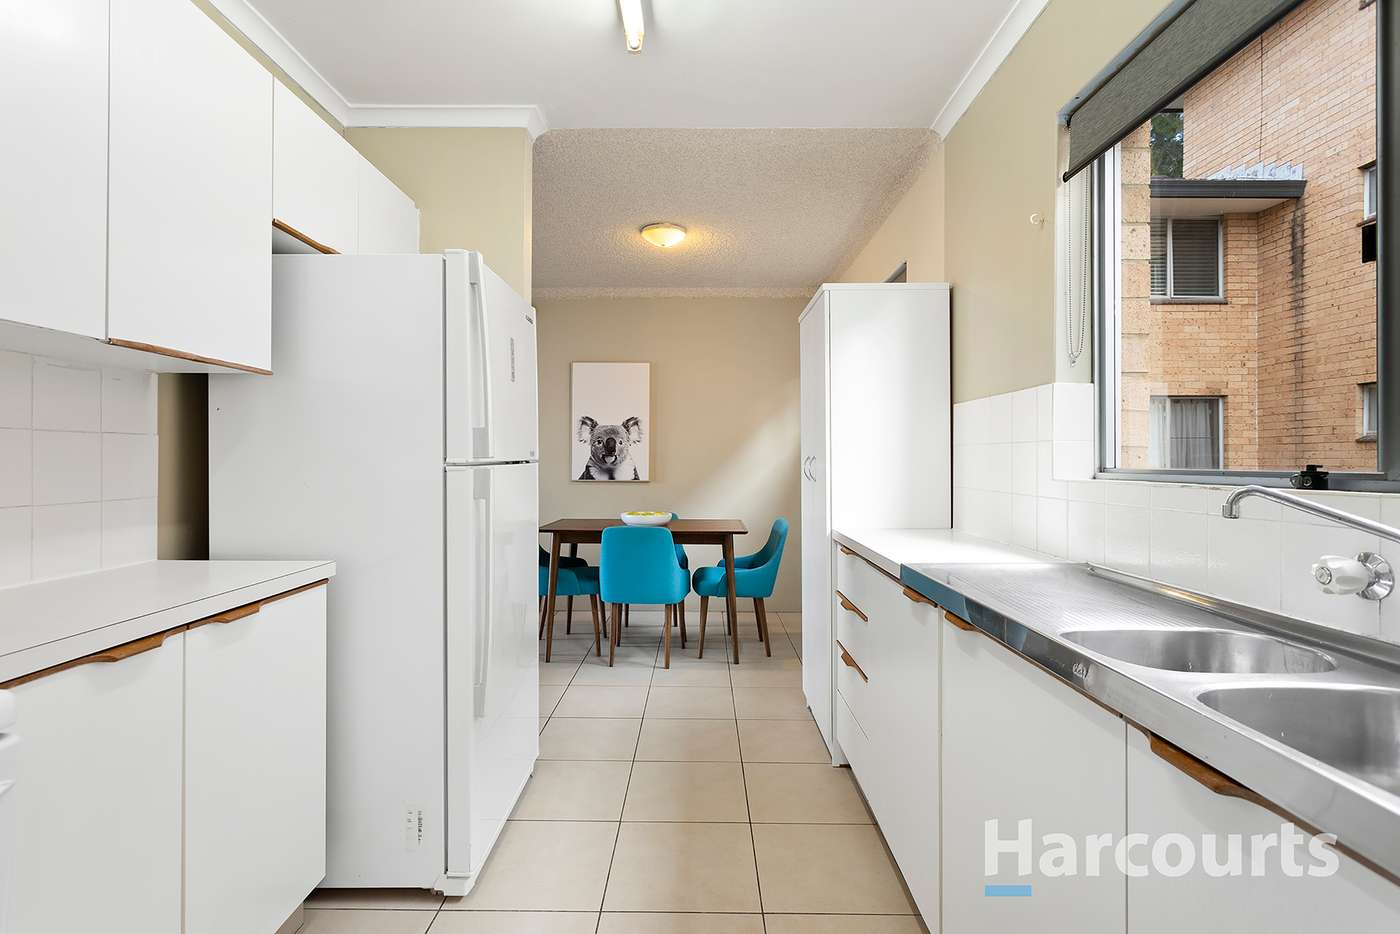 Sixth view of Homely apartment listing, 3/97 Station Street, Waratah NSW 2298